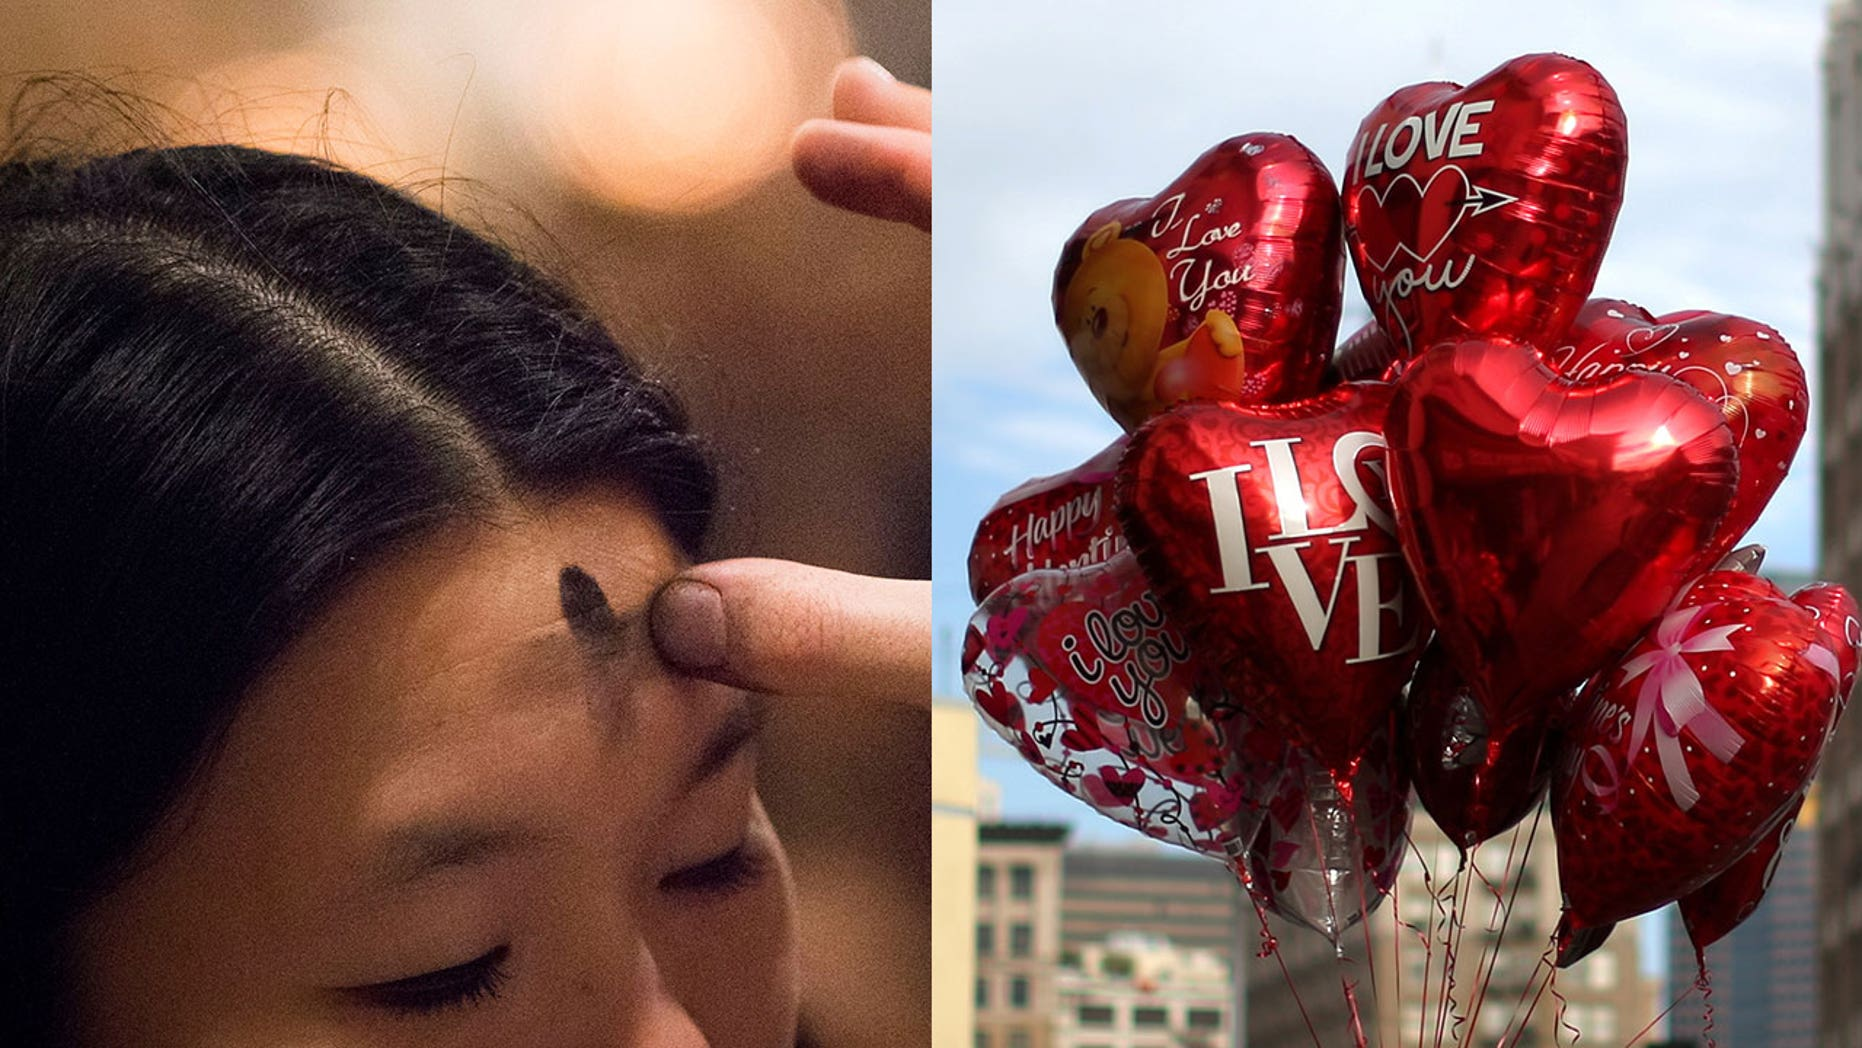 This Wednesday, Feb. 14, marks both Ash Wednesday and Valentine's Day, but Catholic leaders say the former should take precedence.